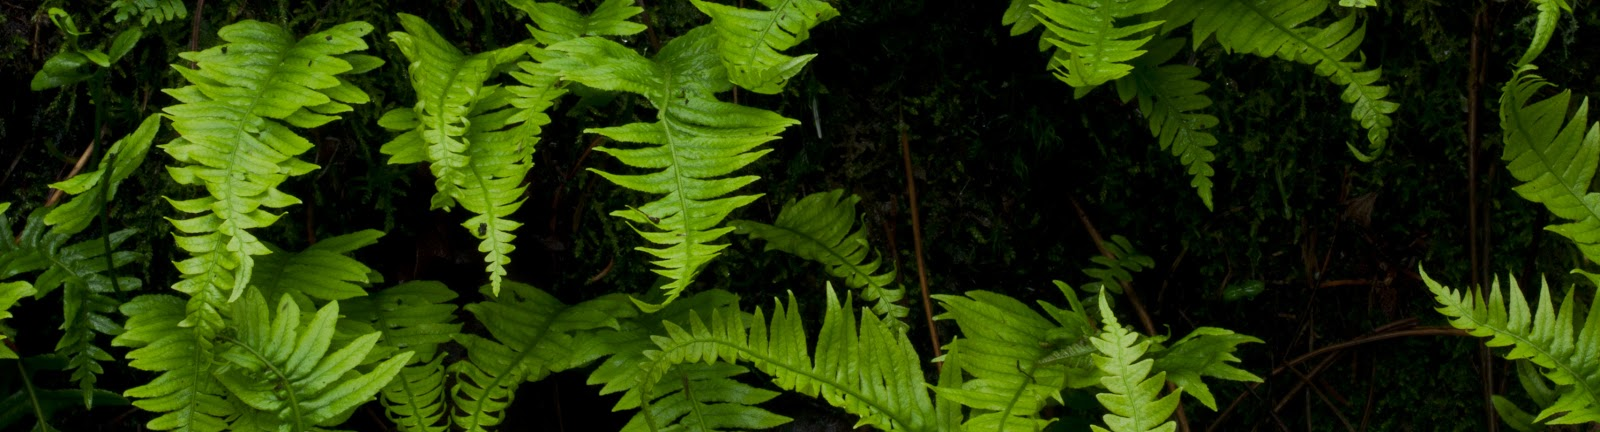 a horizontal grouping of rich green Licorice ferns against a black background